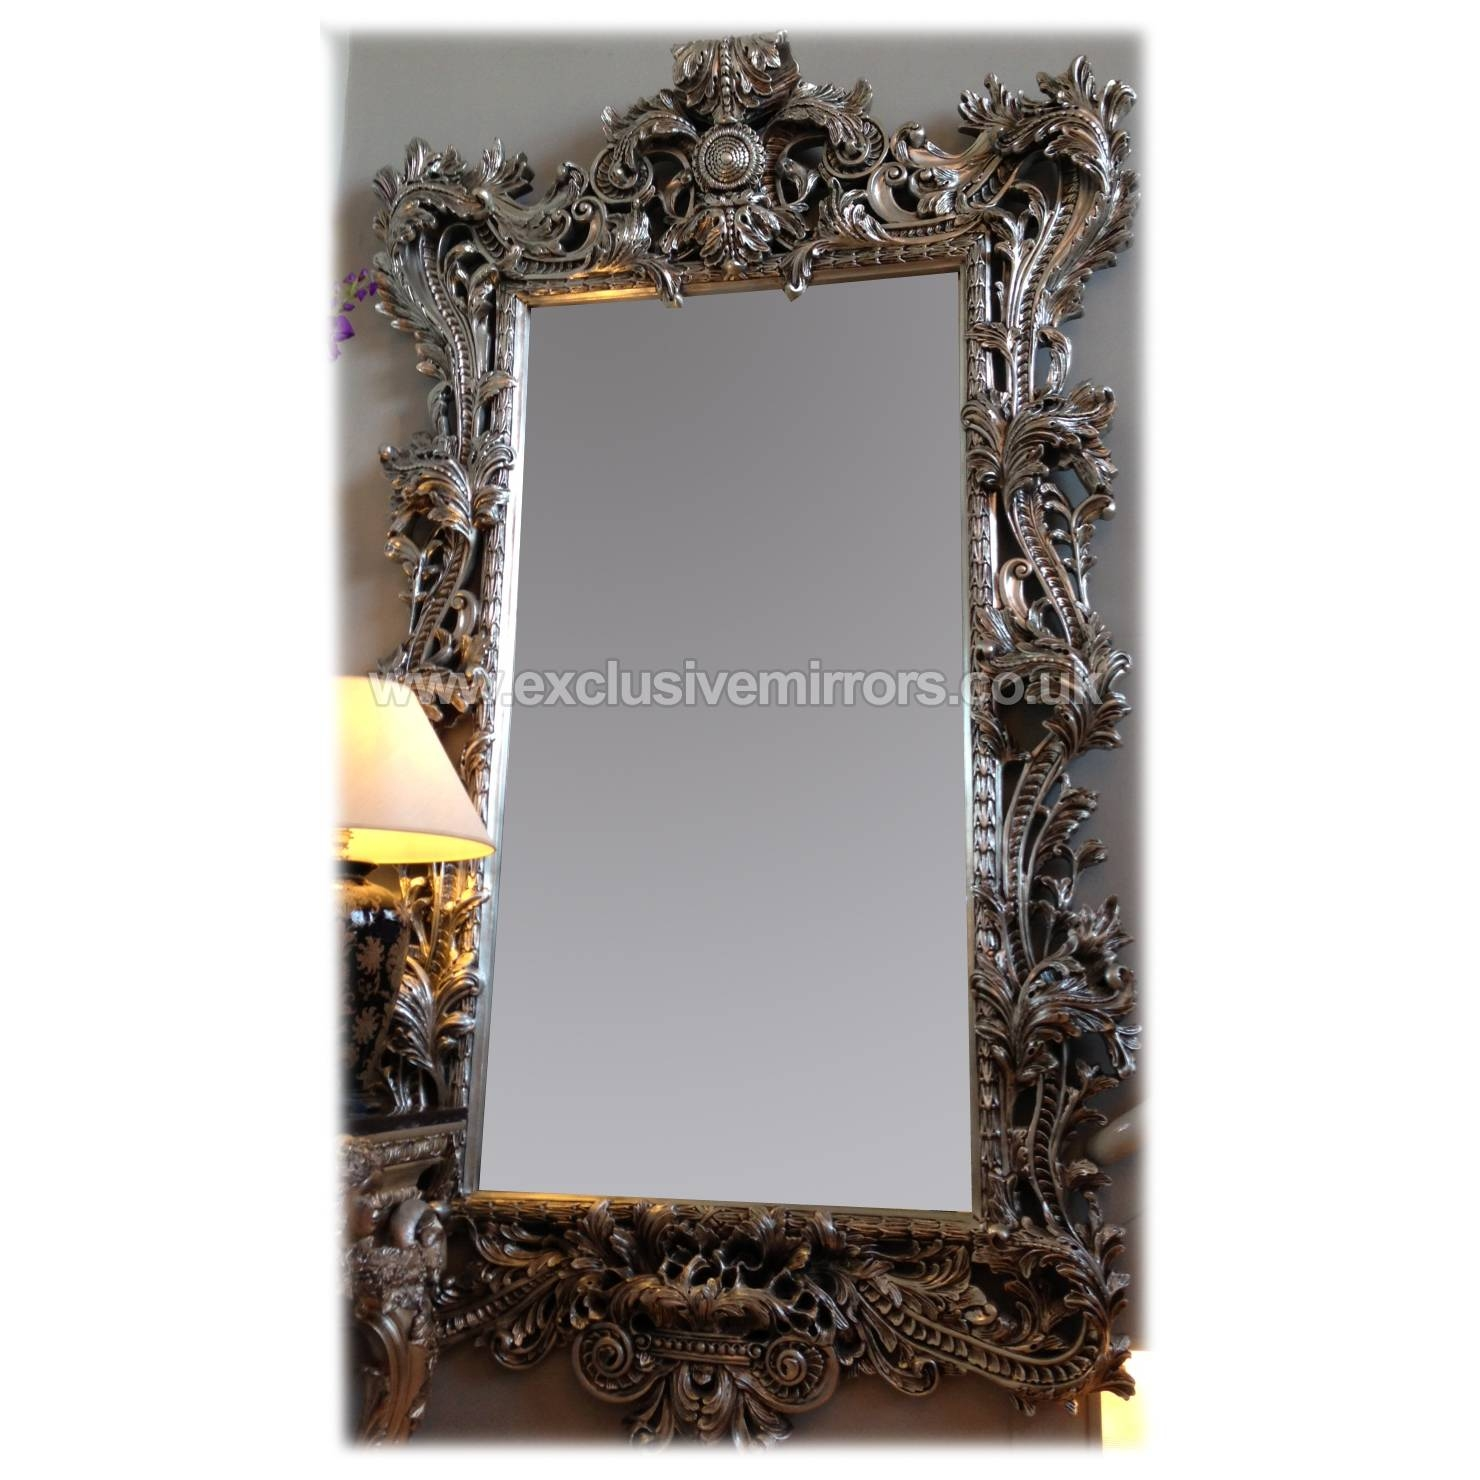 Enchanting Ornate Wall Mirrors Uk Wall Mirrors Ornate Wall Antique Pertaining To Large Silver Vintage Mirrors (View 5 of 15)